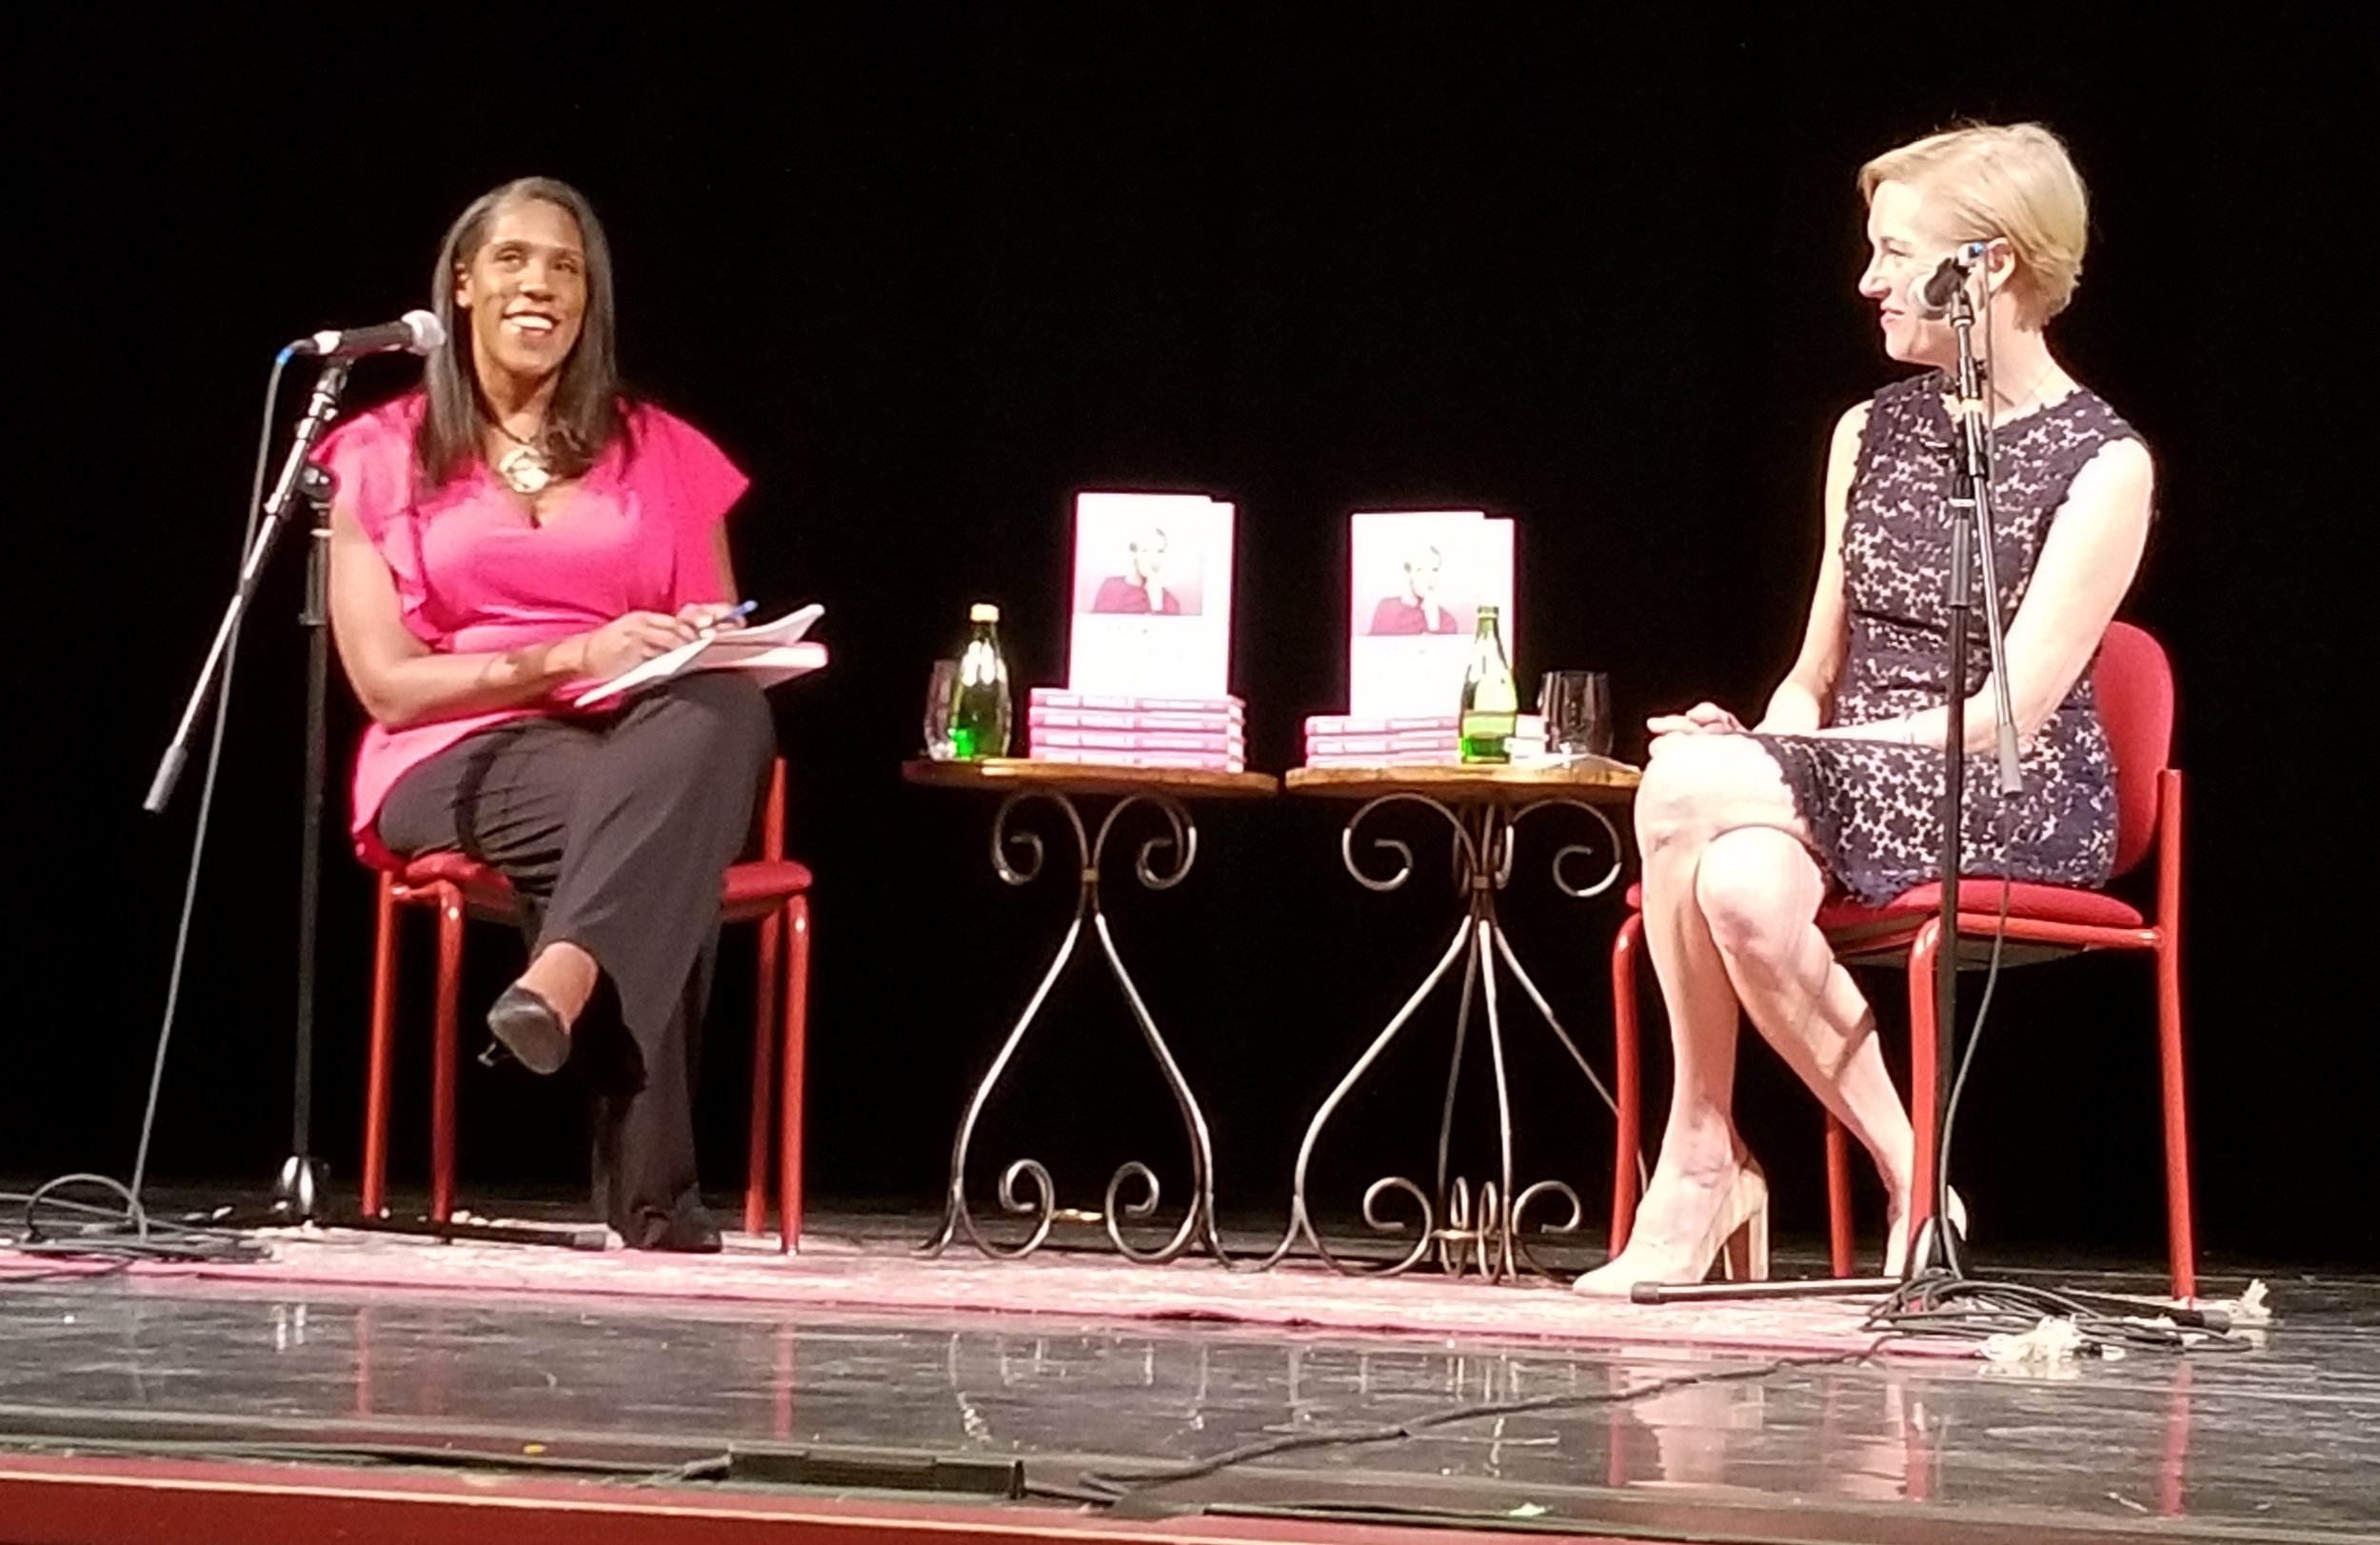 - Cecile Richards and Teresa C. Younger discussing Cecile's book Make Trouble: Standing Up, Speaking Out, and Finding Courage to Lead.